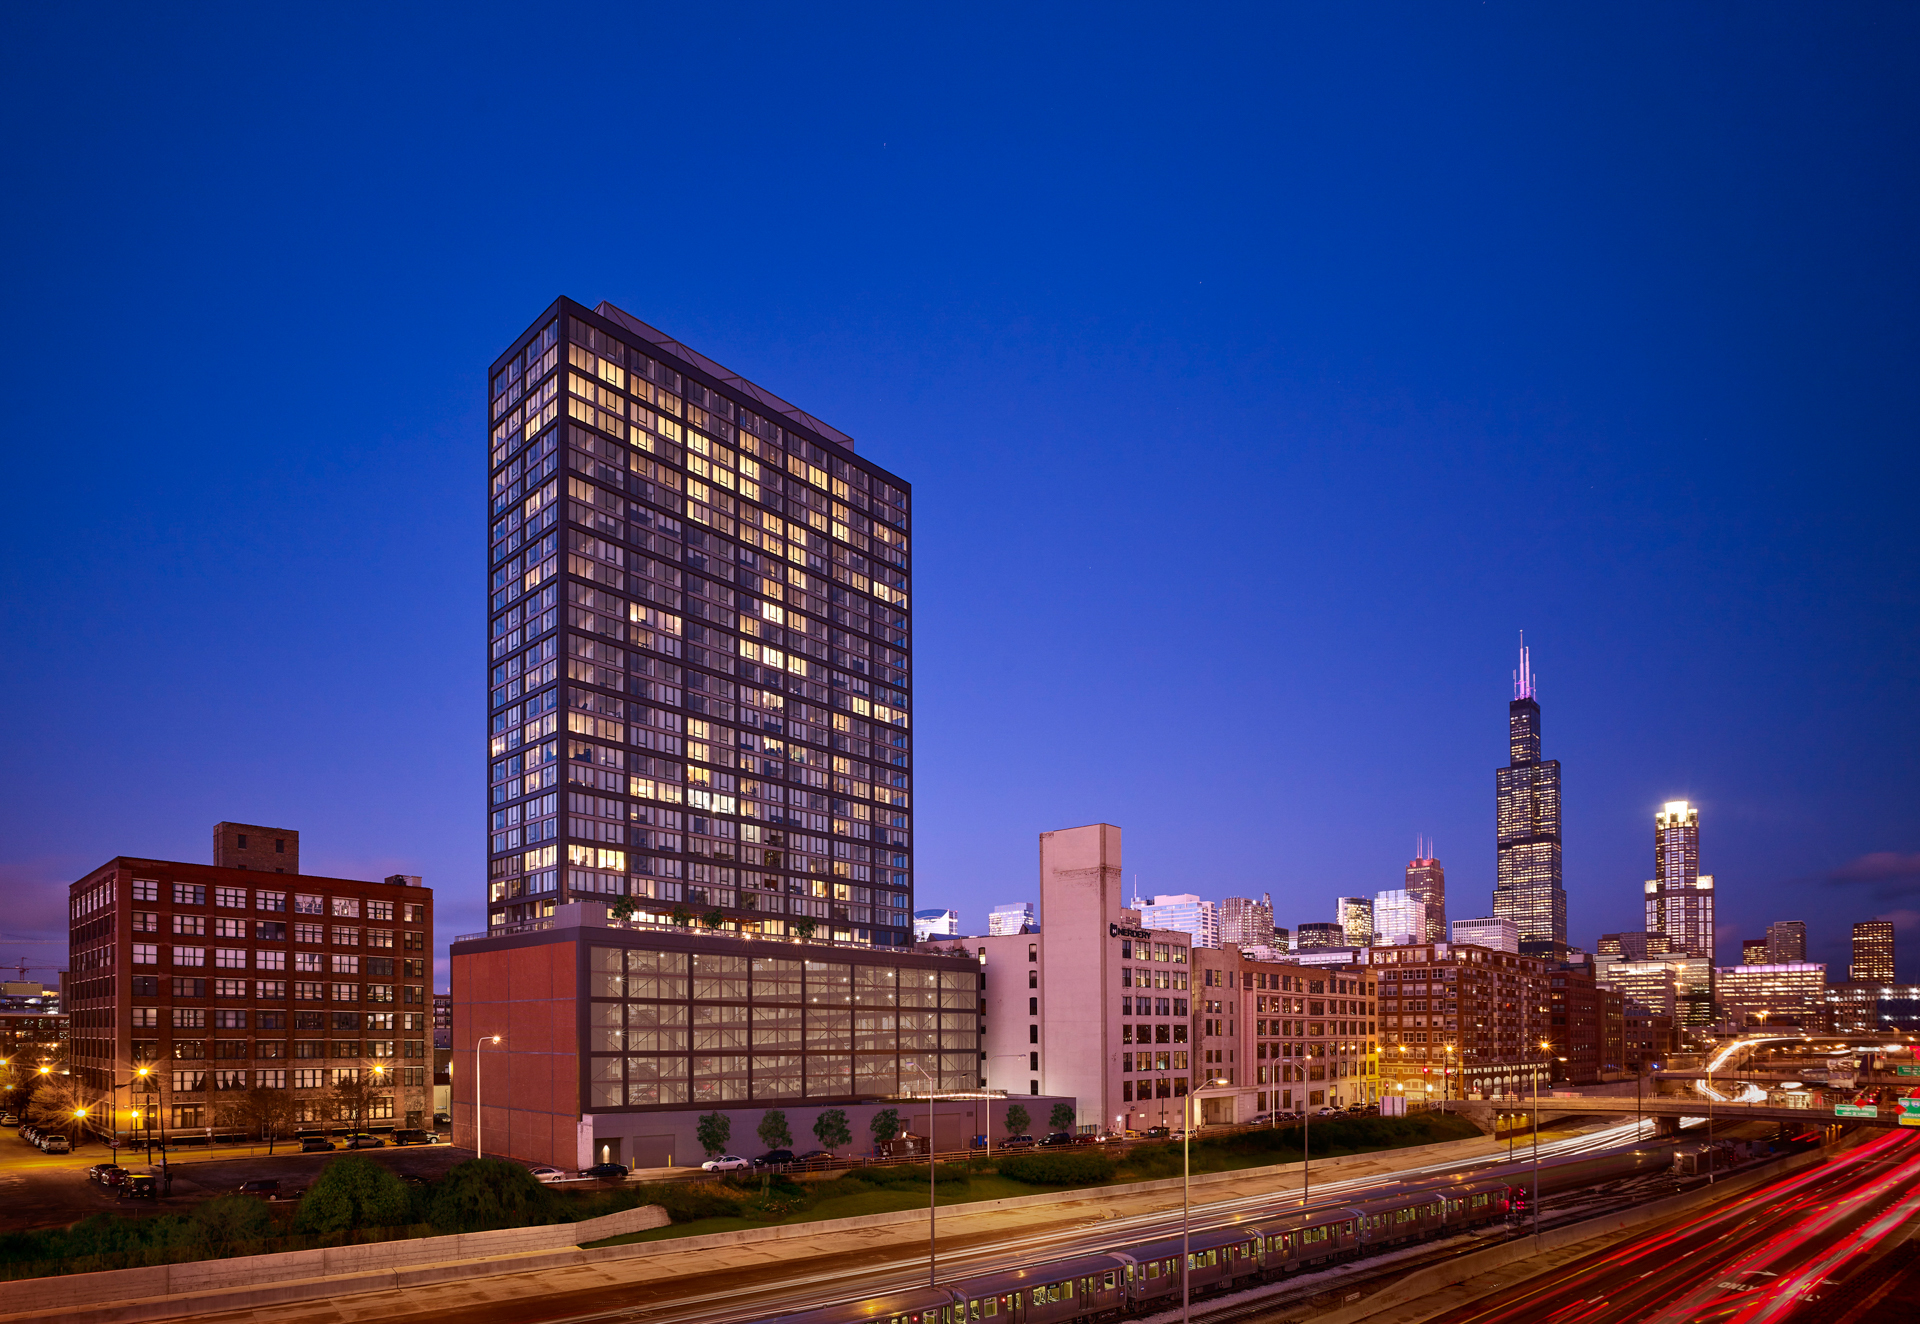 related-corporate-luxury-rental-cut-sheet-properties-default-landmarkwestloop-hero-1-14-19-scaled.jpg